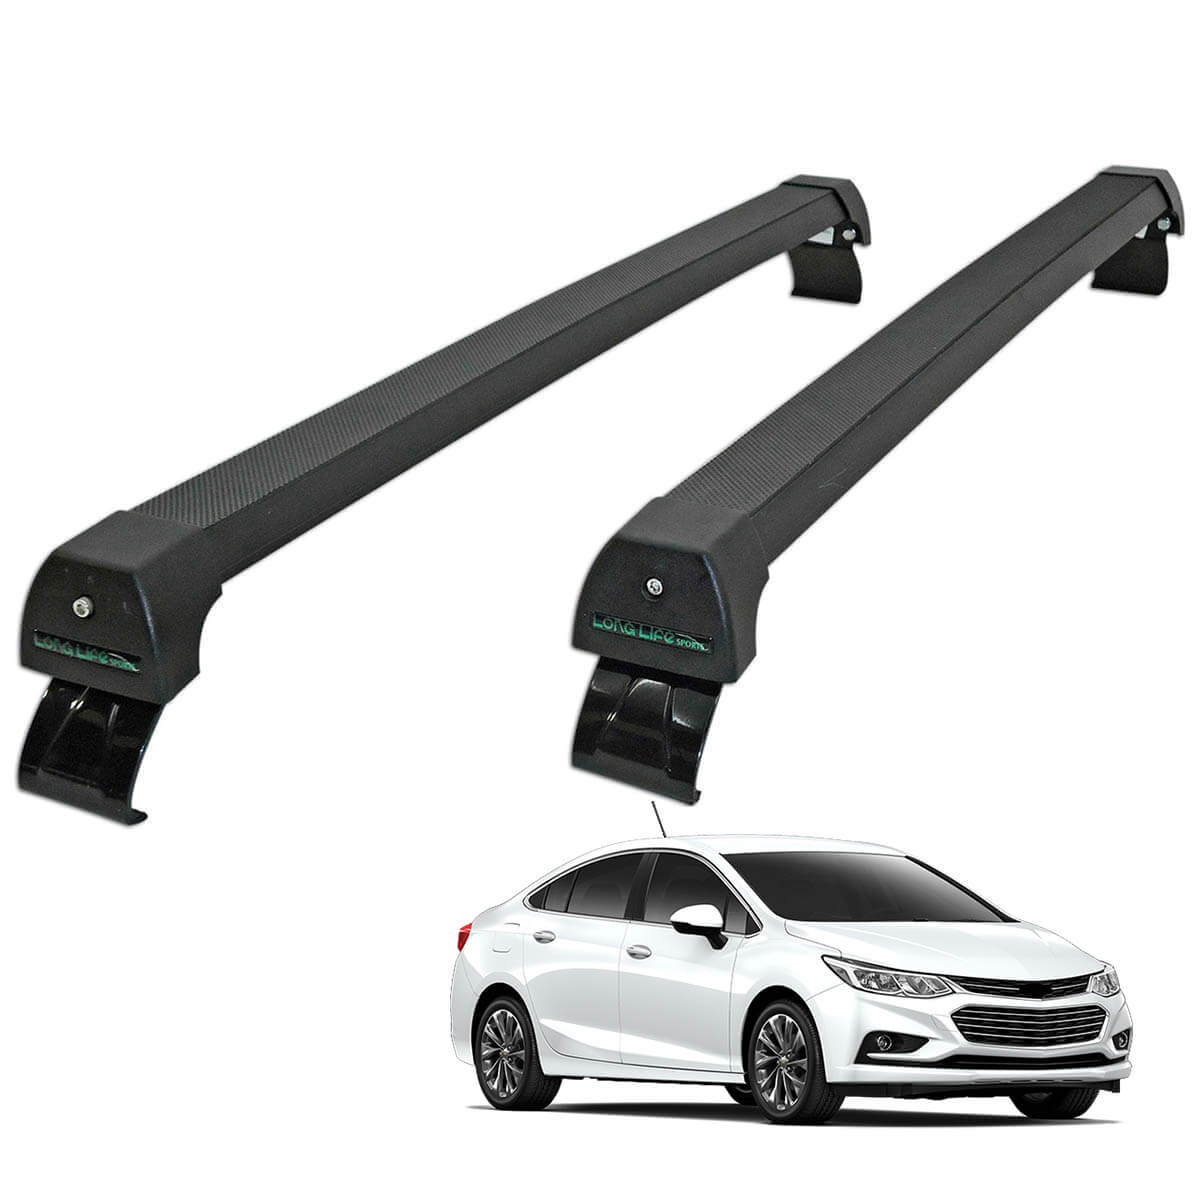 Rack de teto Long Life Sports preto Novo Cruze sedan 2017 2018 2019 2020